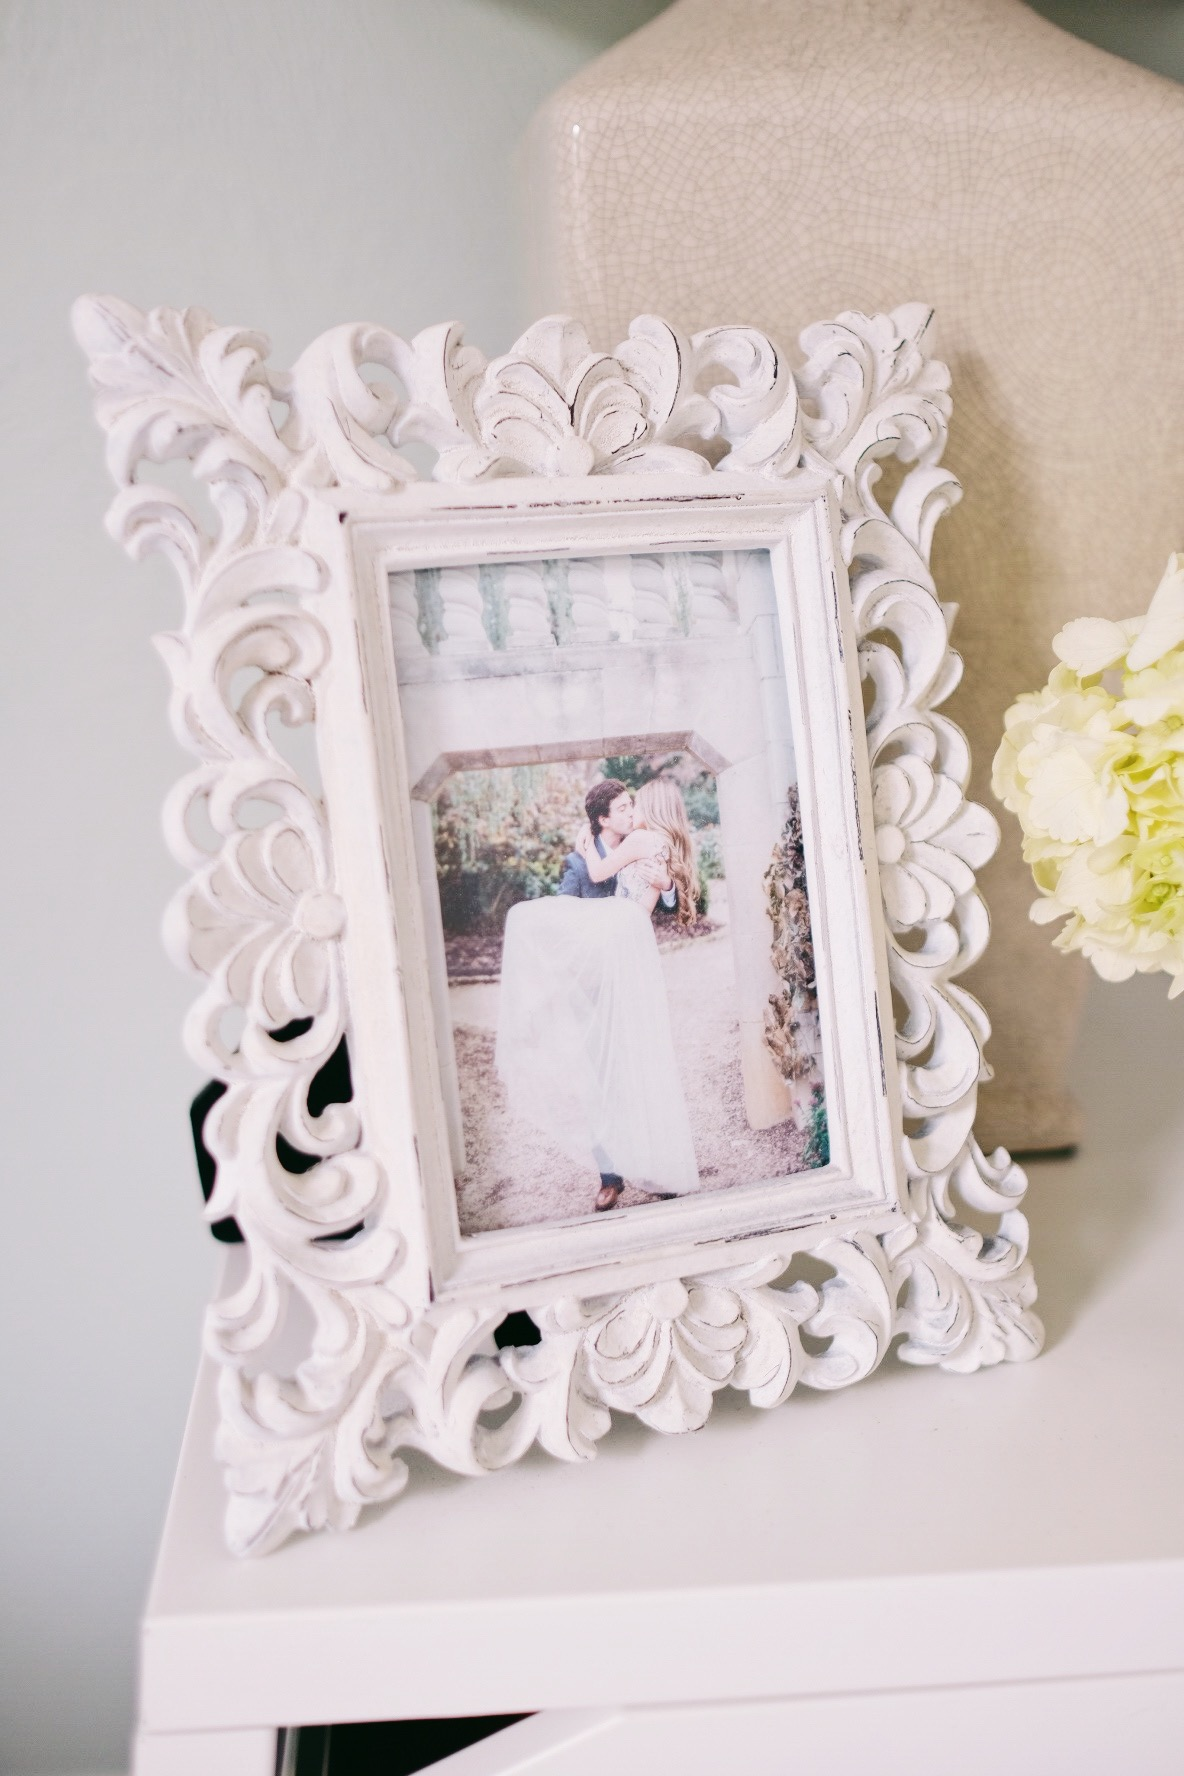 Bedside table decor | Miss Madeline Rose